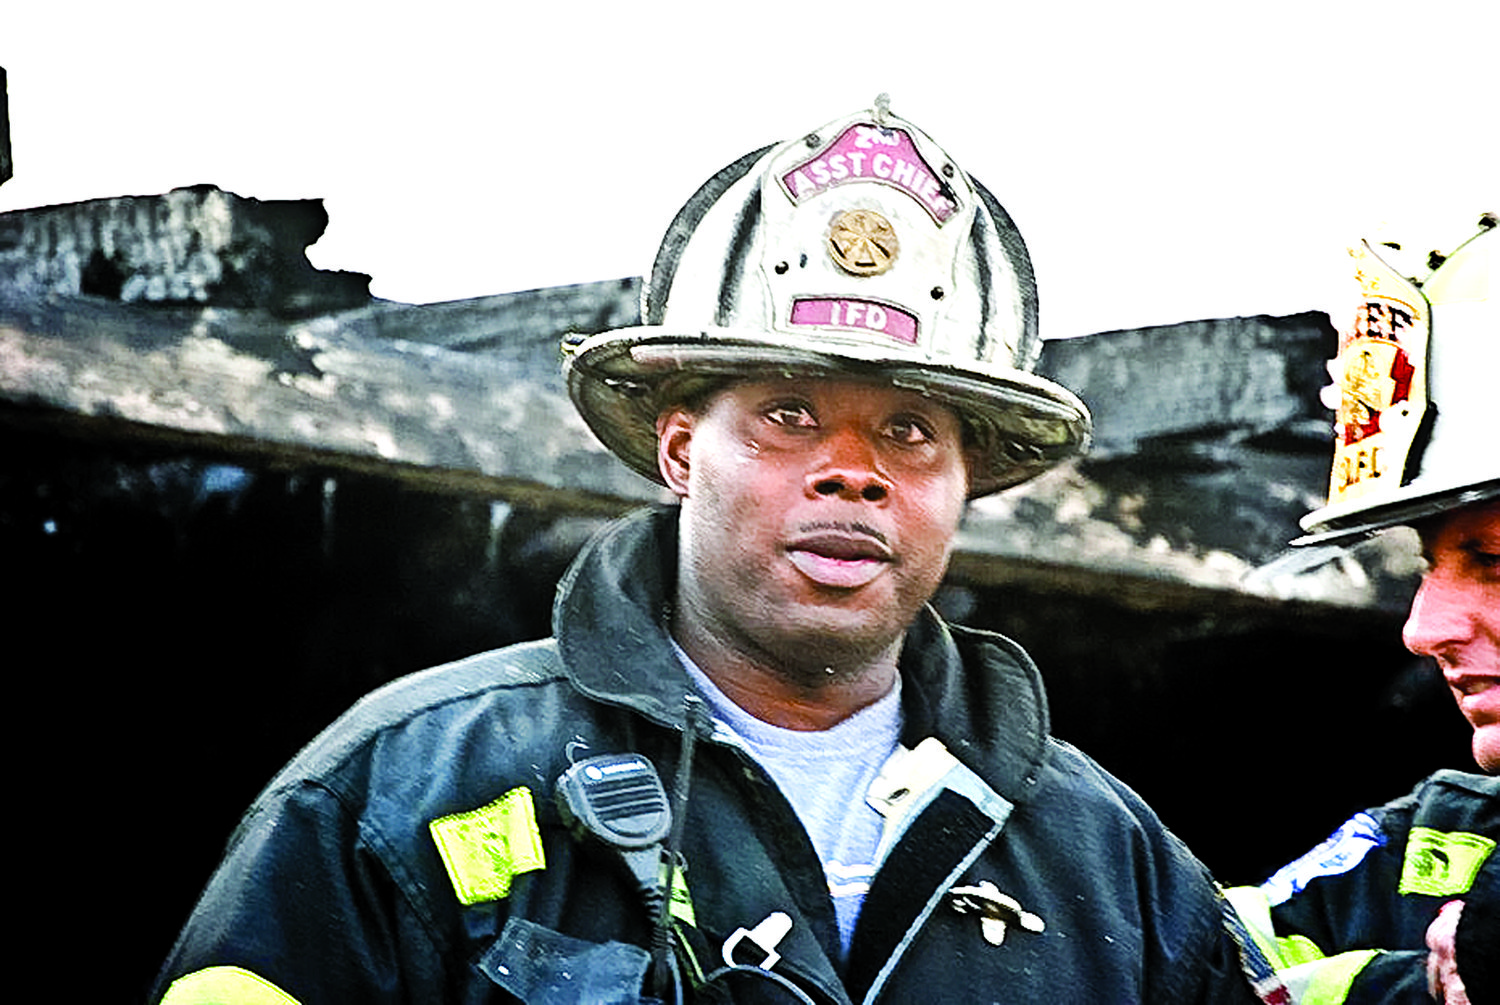 Renaming Negro Bar Channel for deceased Inwood volunteer firefighter Joseph Sanford Jr. is one step closer as the House of Representatives approved its legislation. The bill now goes to President Trump.